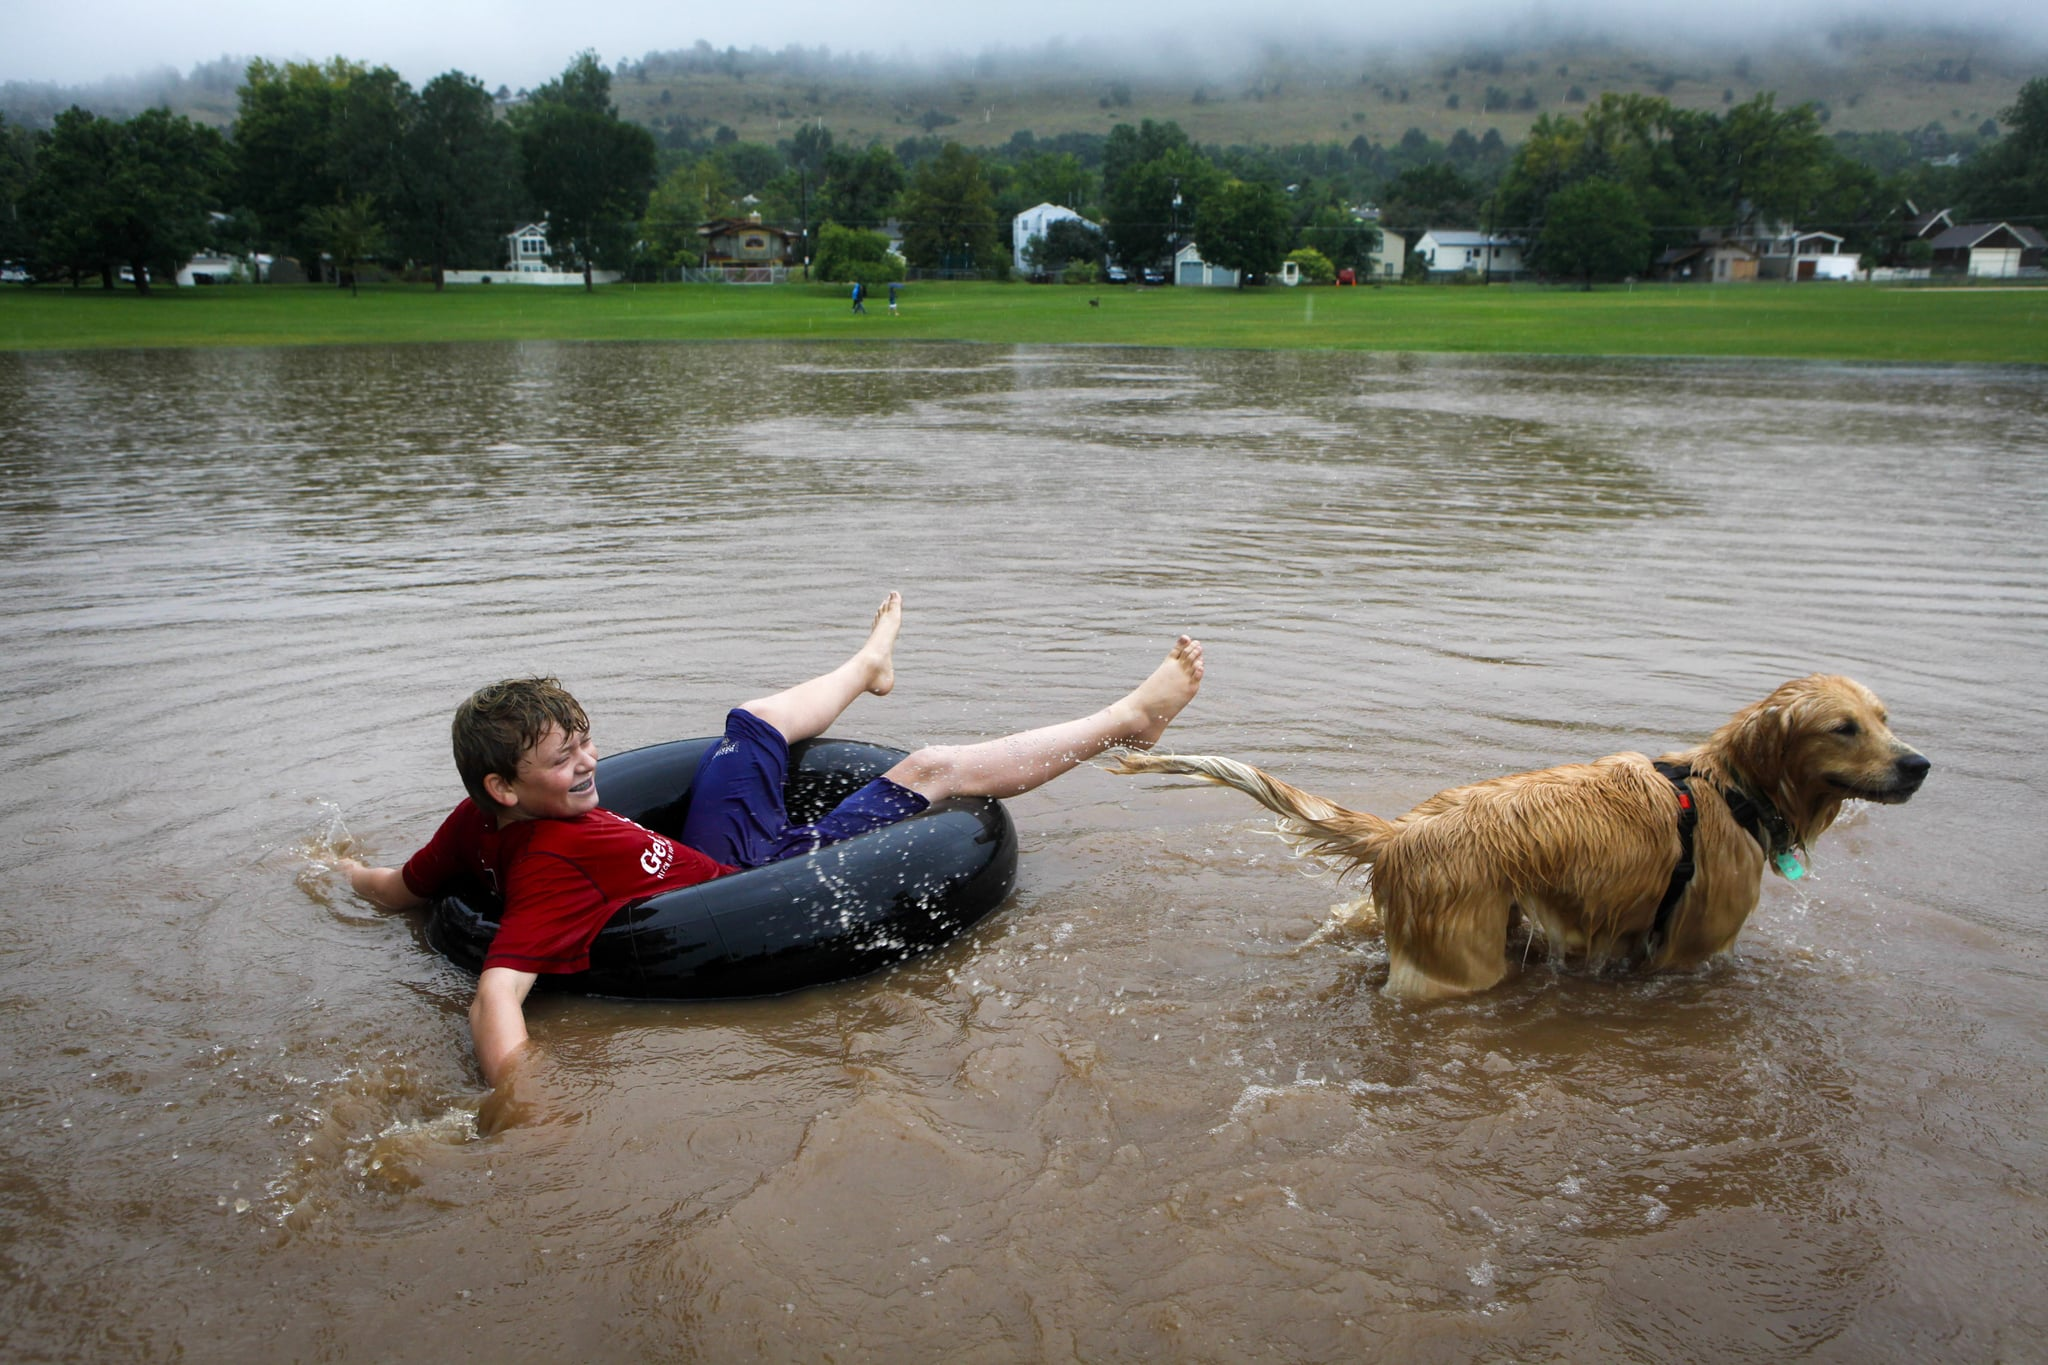 A boy floated through the flood waters with a dog.